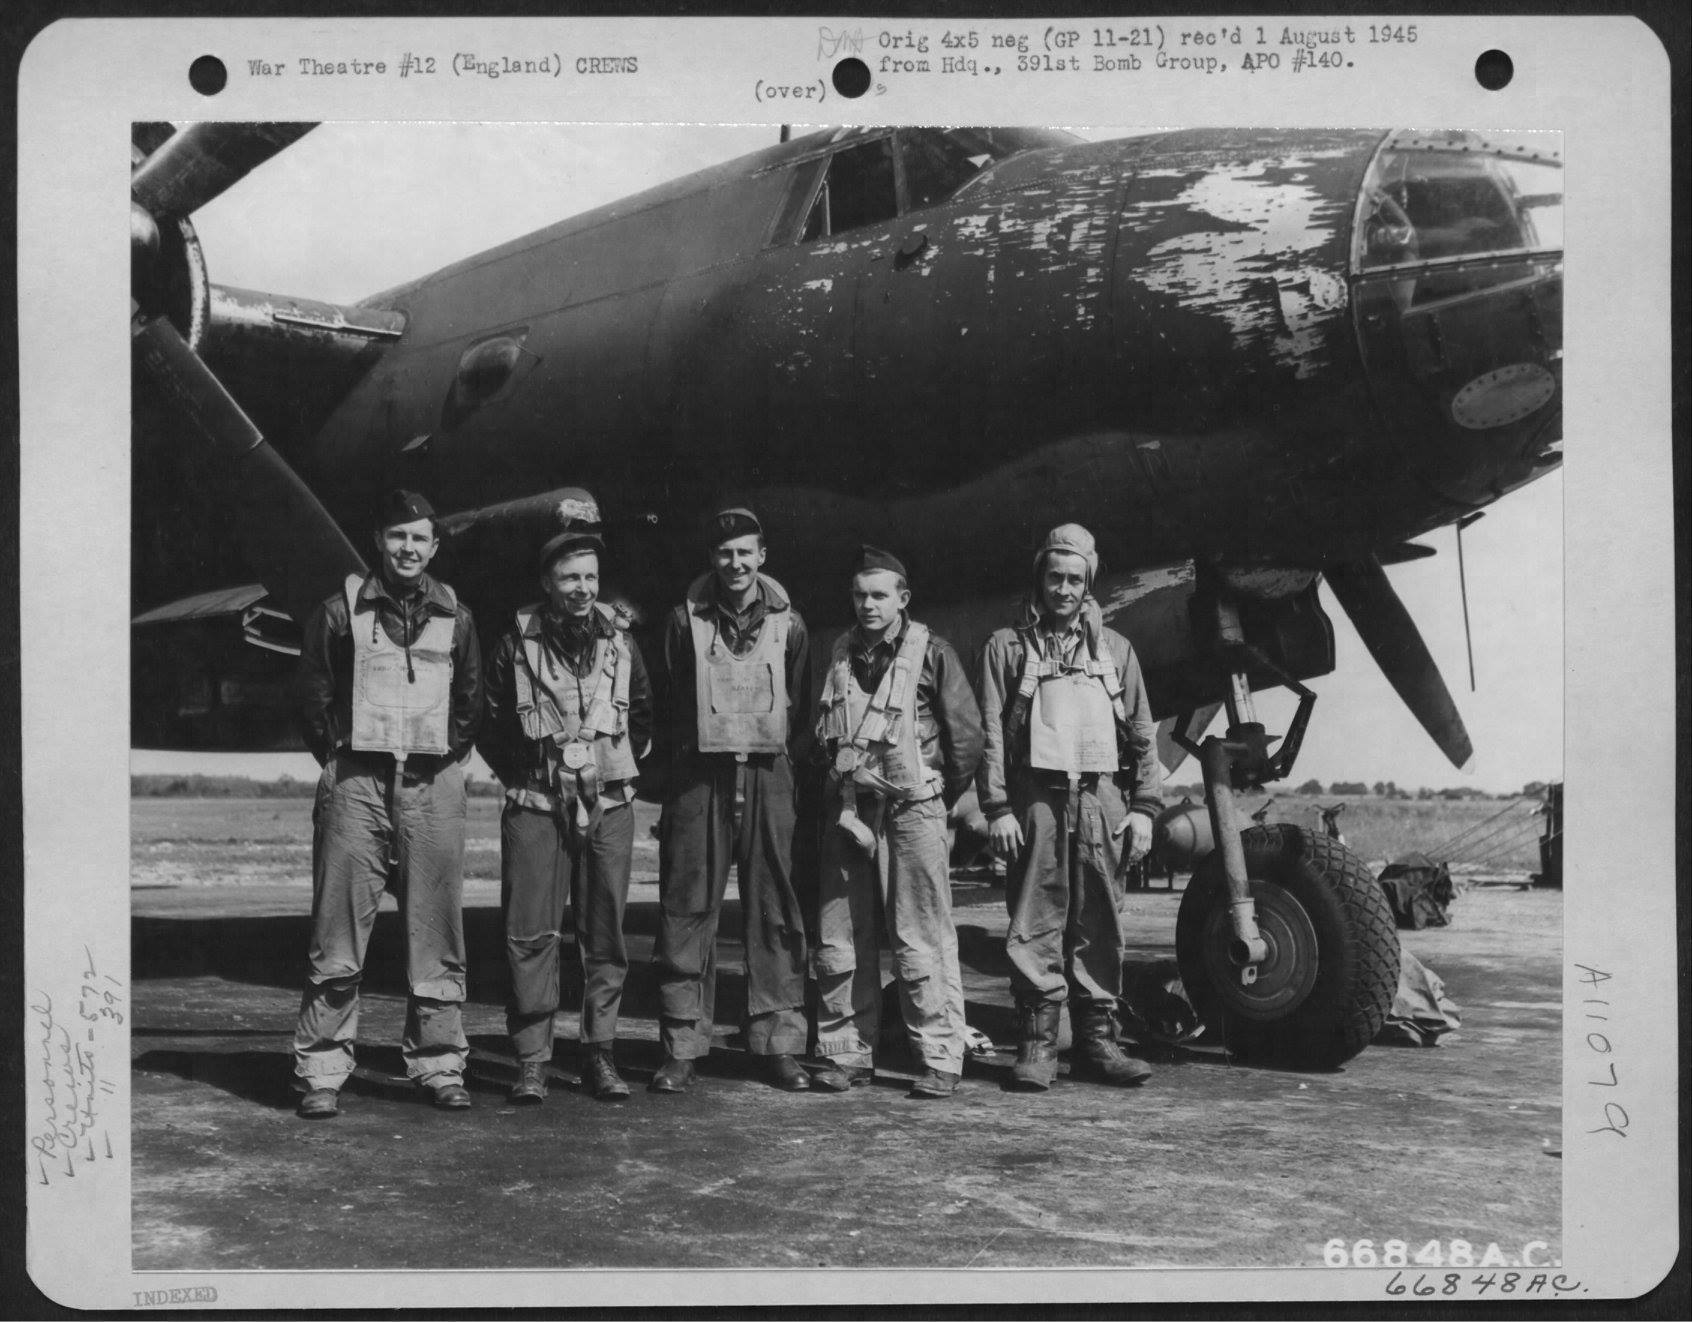 USAAF 42 95830 B 26B Marauder 391BG573BS T6M Calamity Lu with Lt. Blute and crew England 9 Aug 1944 01